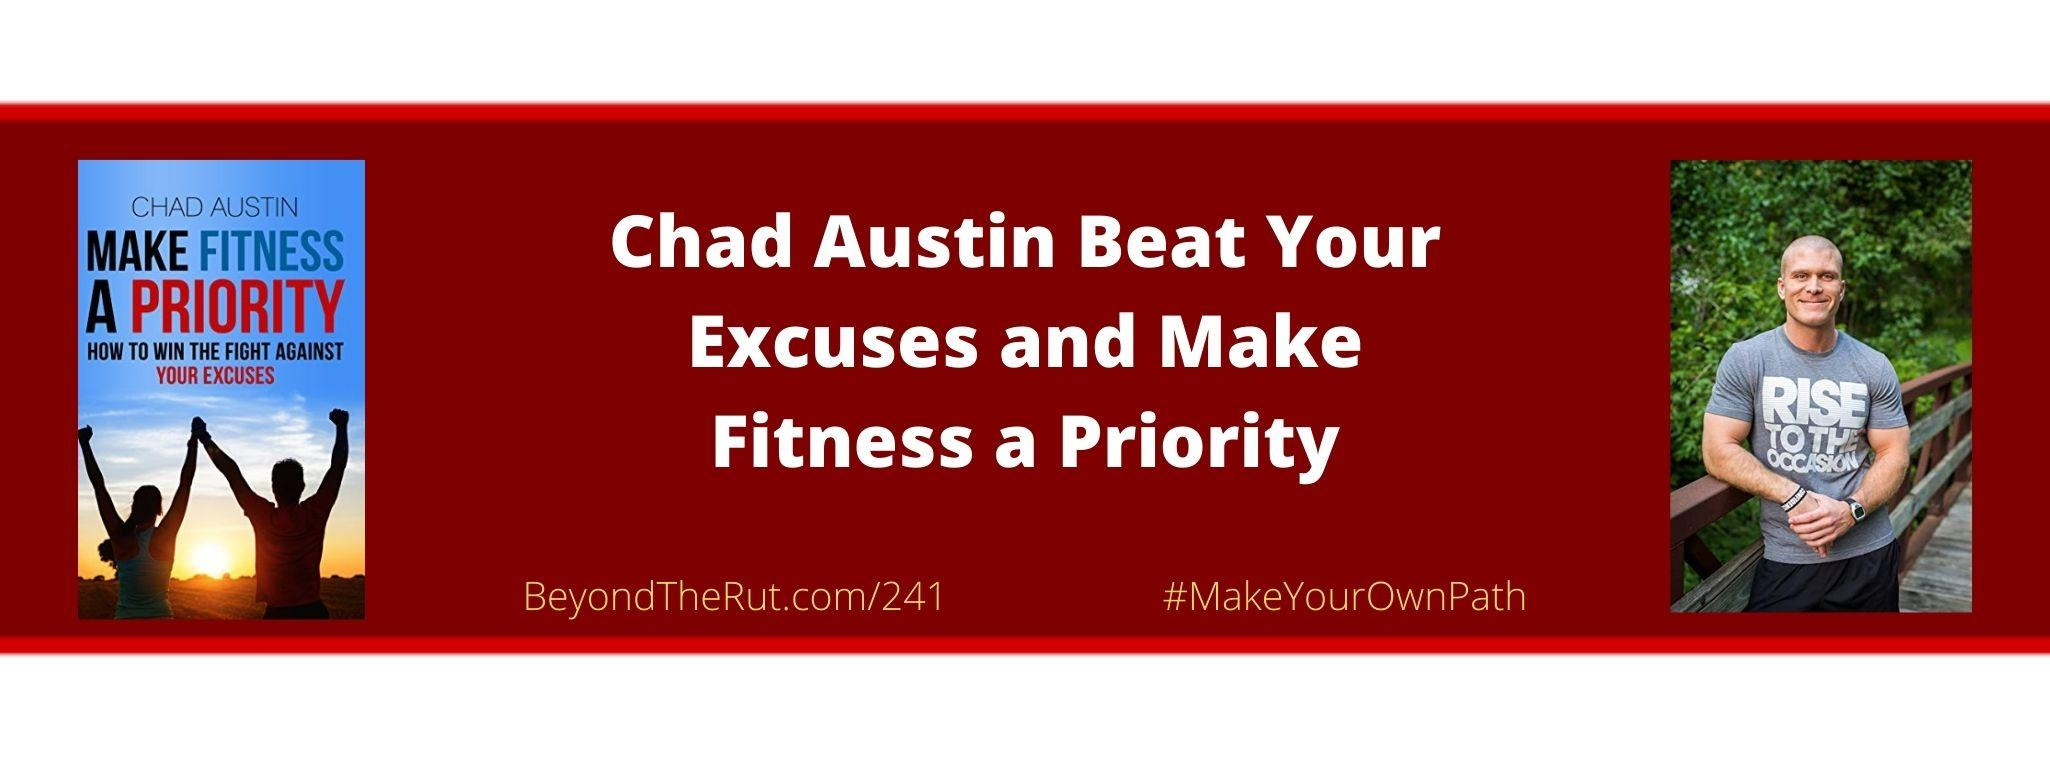 Make Fitness a Priority Chad Austin